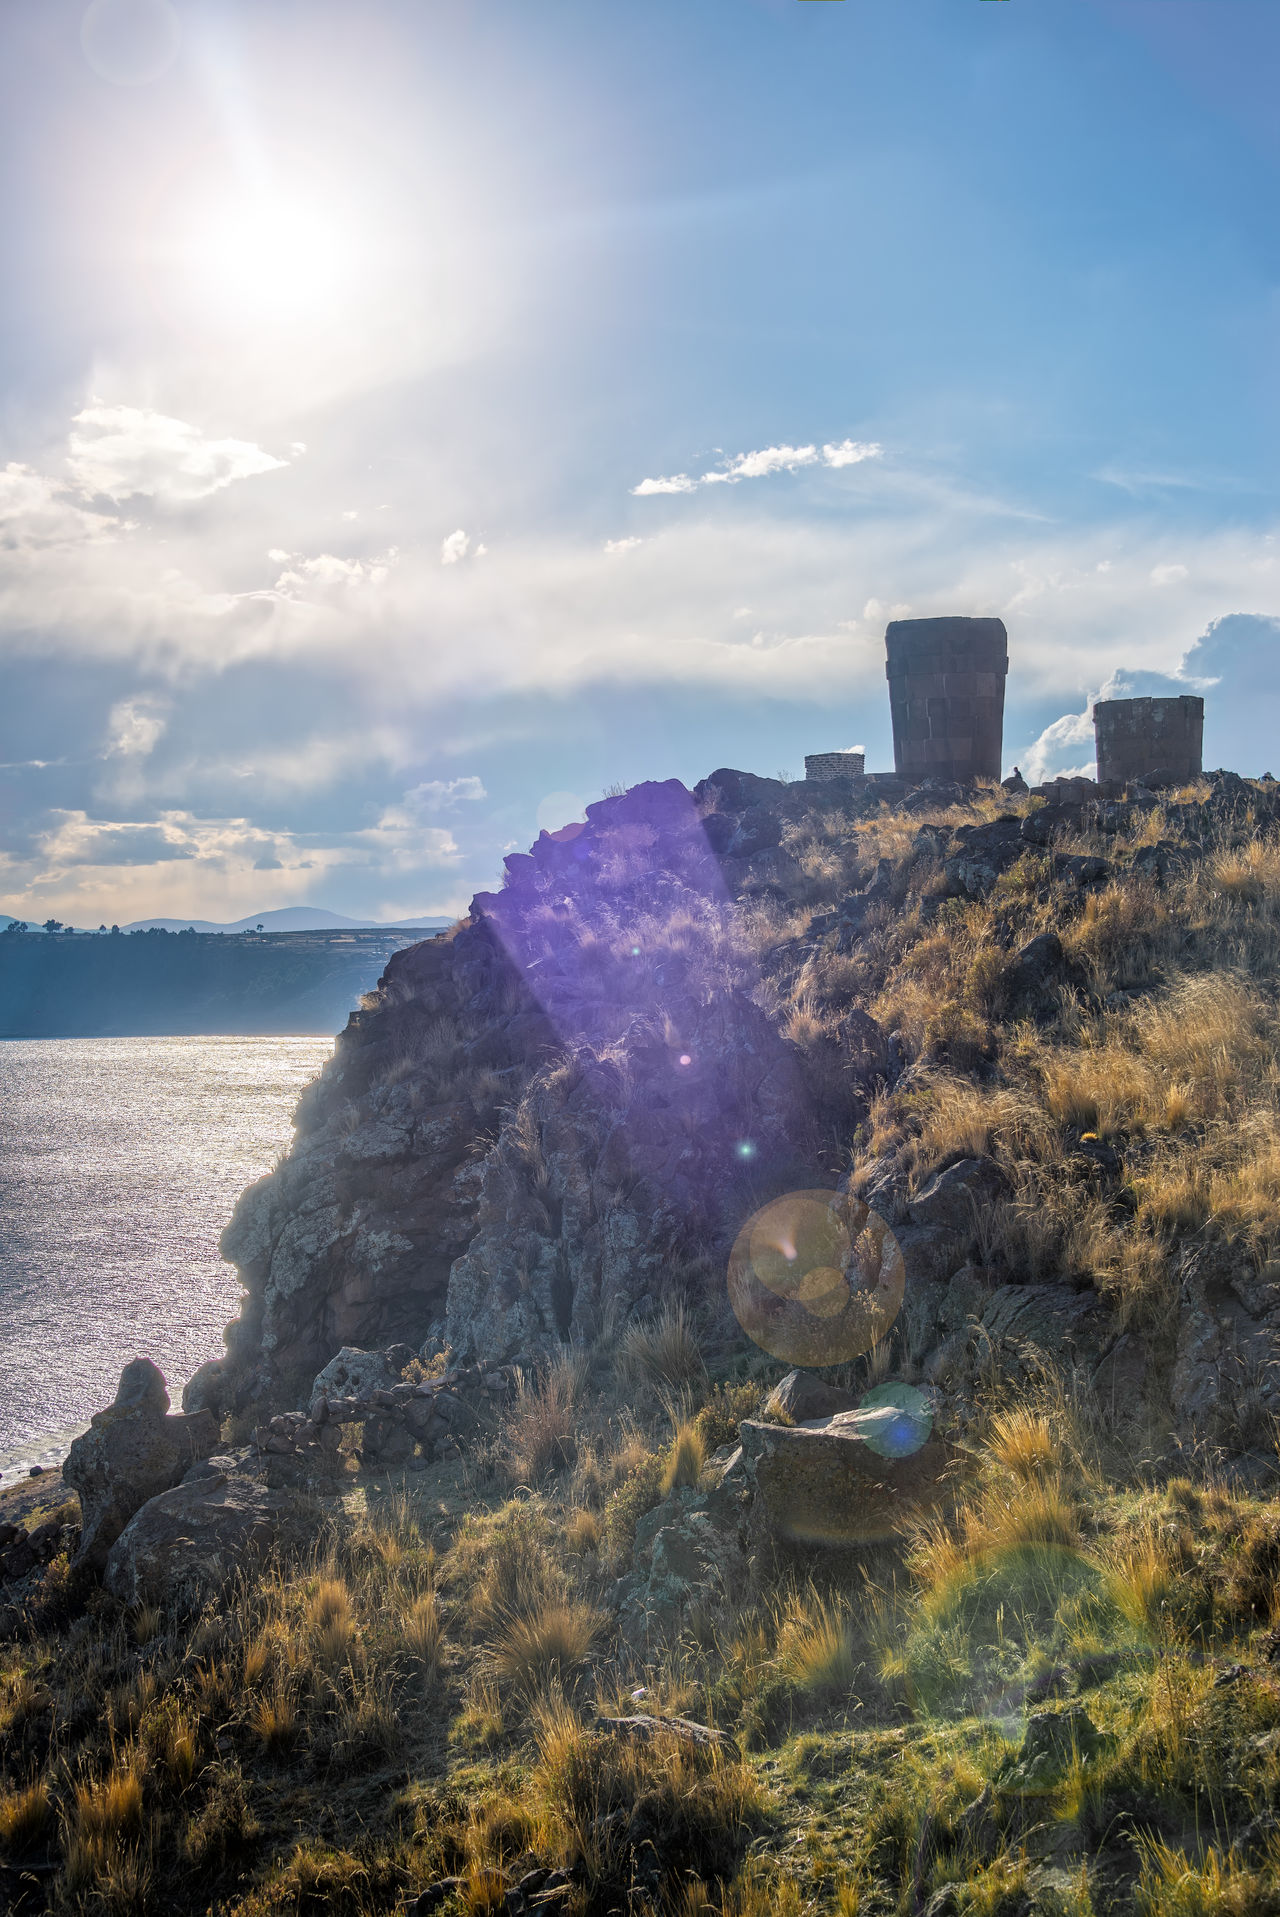 Sunset at the Sillustani funerary towers near Puno, Peru Architecture Aymara Beauty In Nature Building Chullpa Day Funerary Inca Incan Lake Nature No People Outdoors Peru Puno Ruins Sillustani Sky South America Tourism Tower Travel Travel Destinations Umayo Water